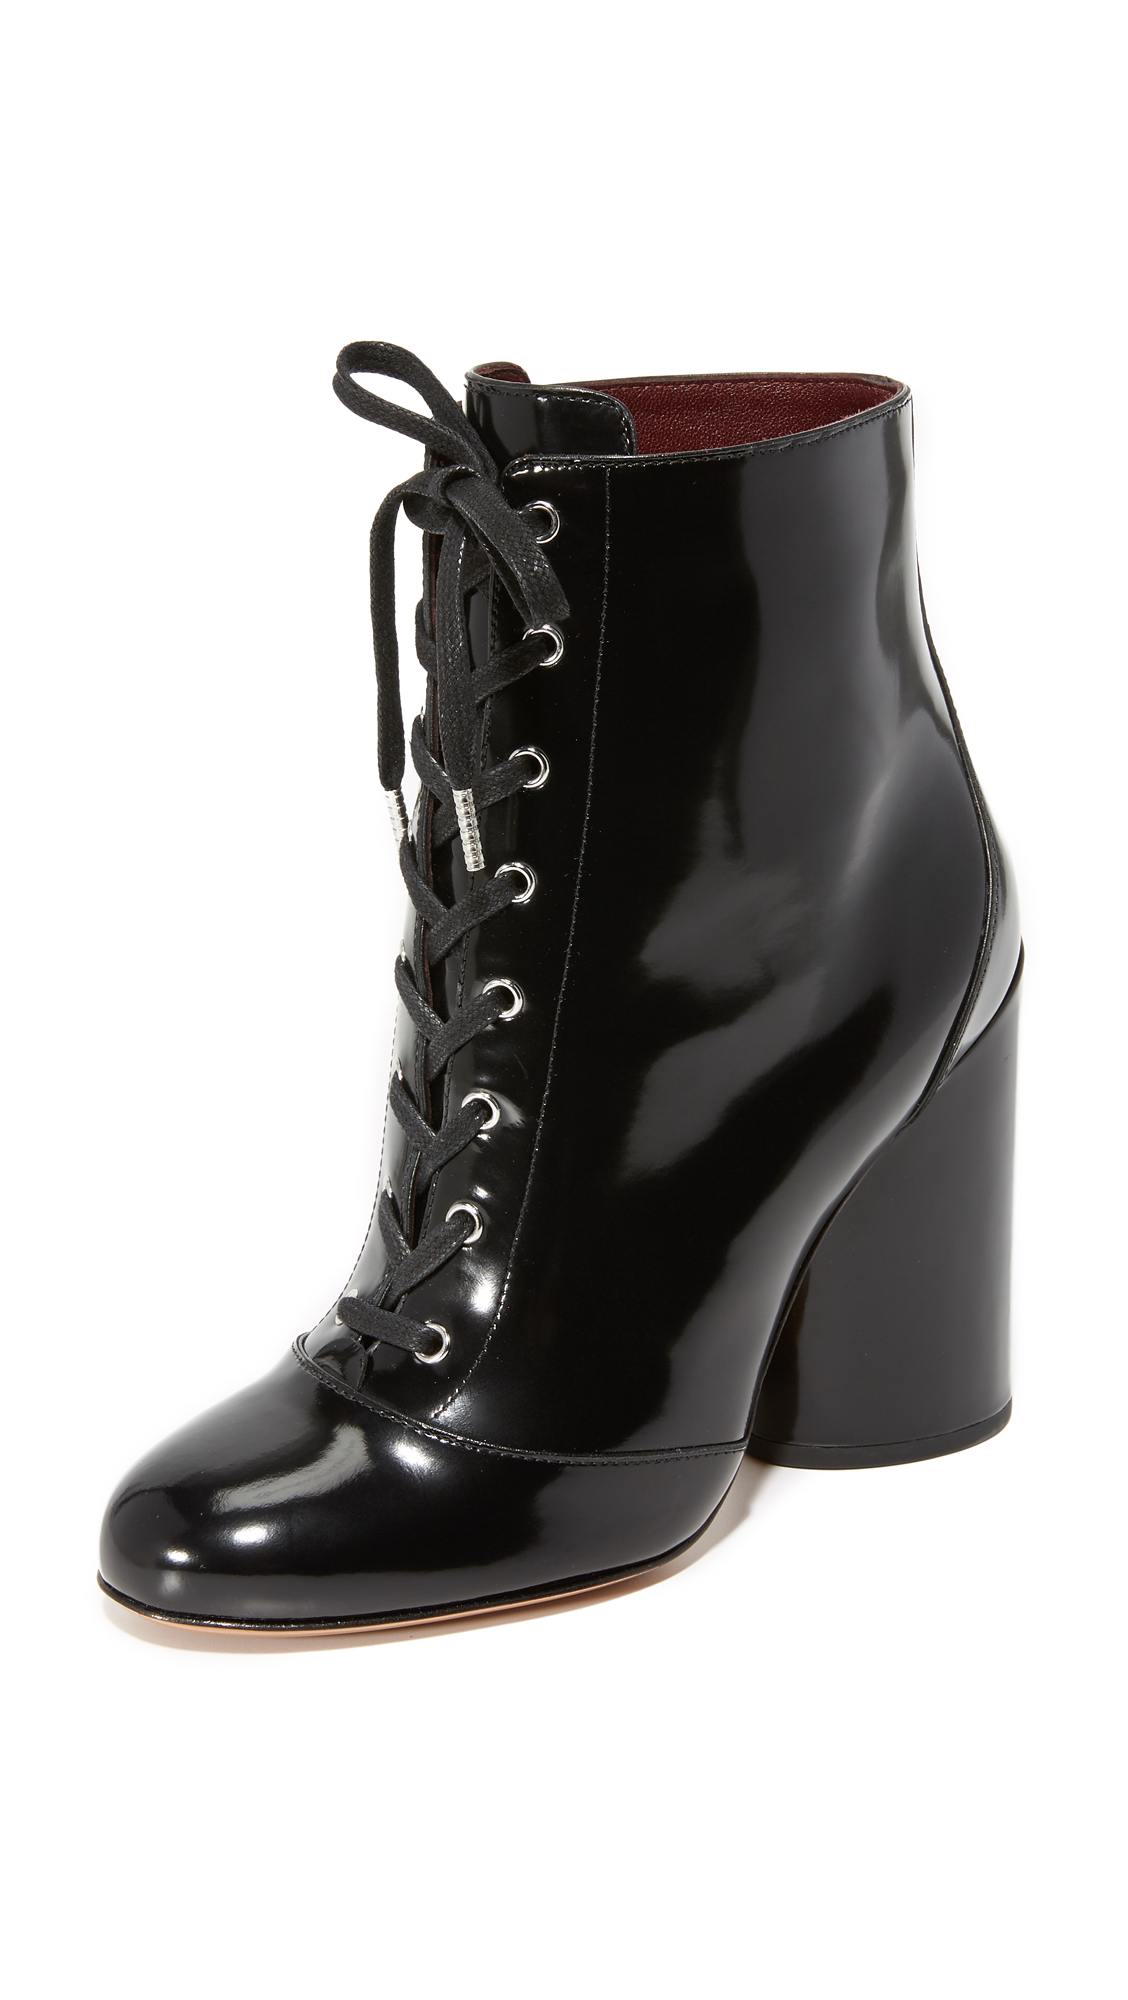 Marc Jacobs Tori Lace Up Booties - Black